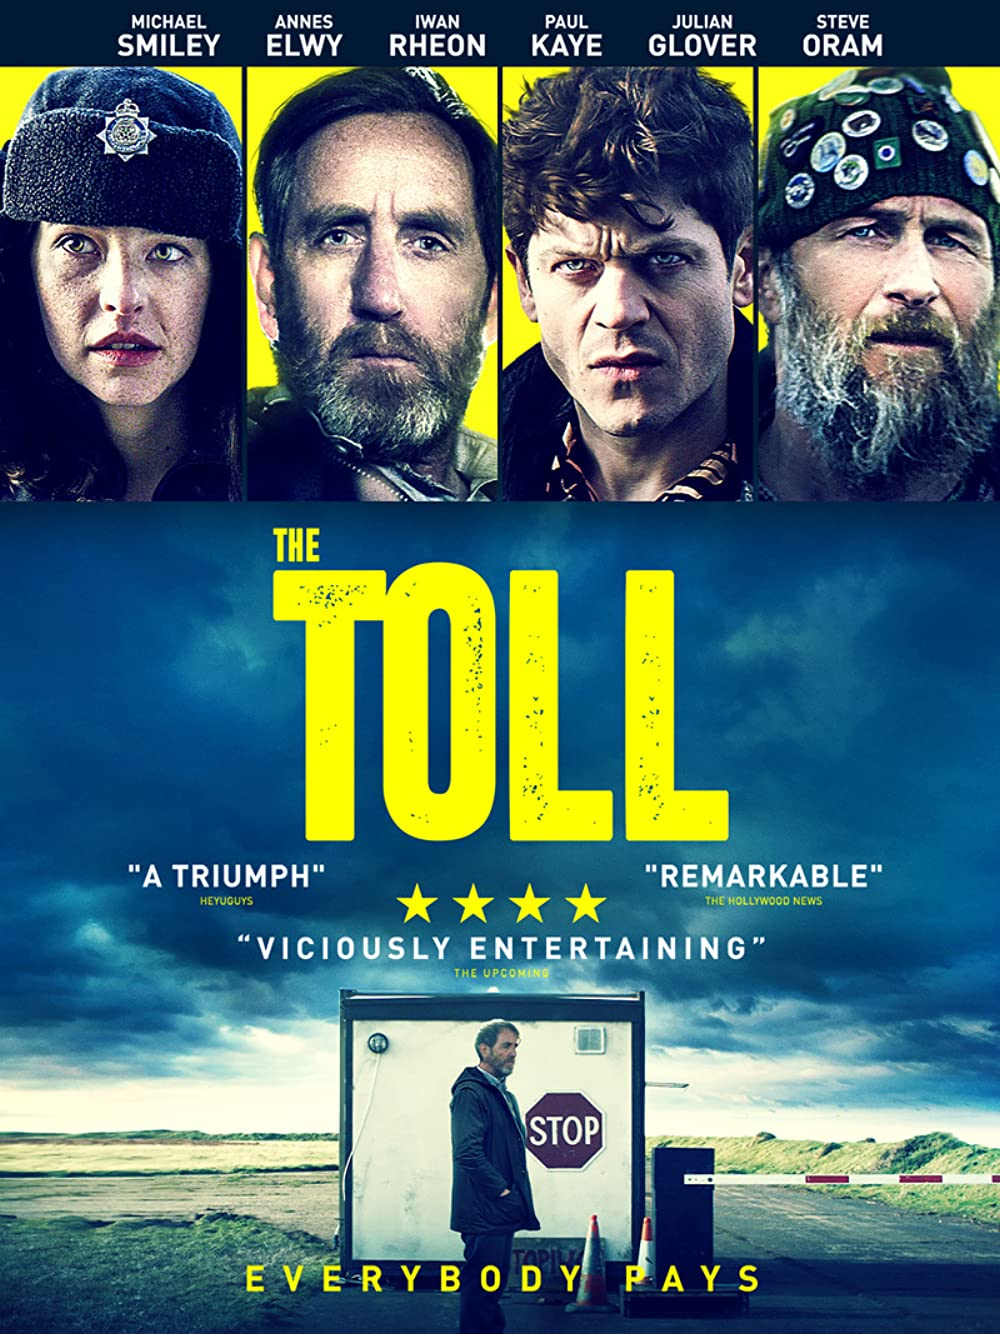 The Toll (2021) Hindi (Voice Over) Dubbed+ English [Dual Audio] WebRip 720p [1XBET]